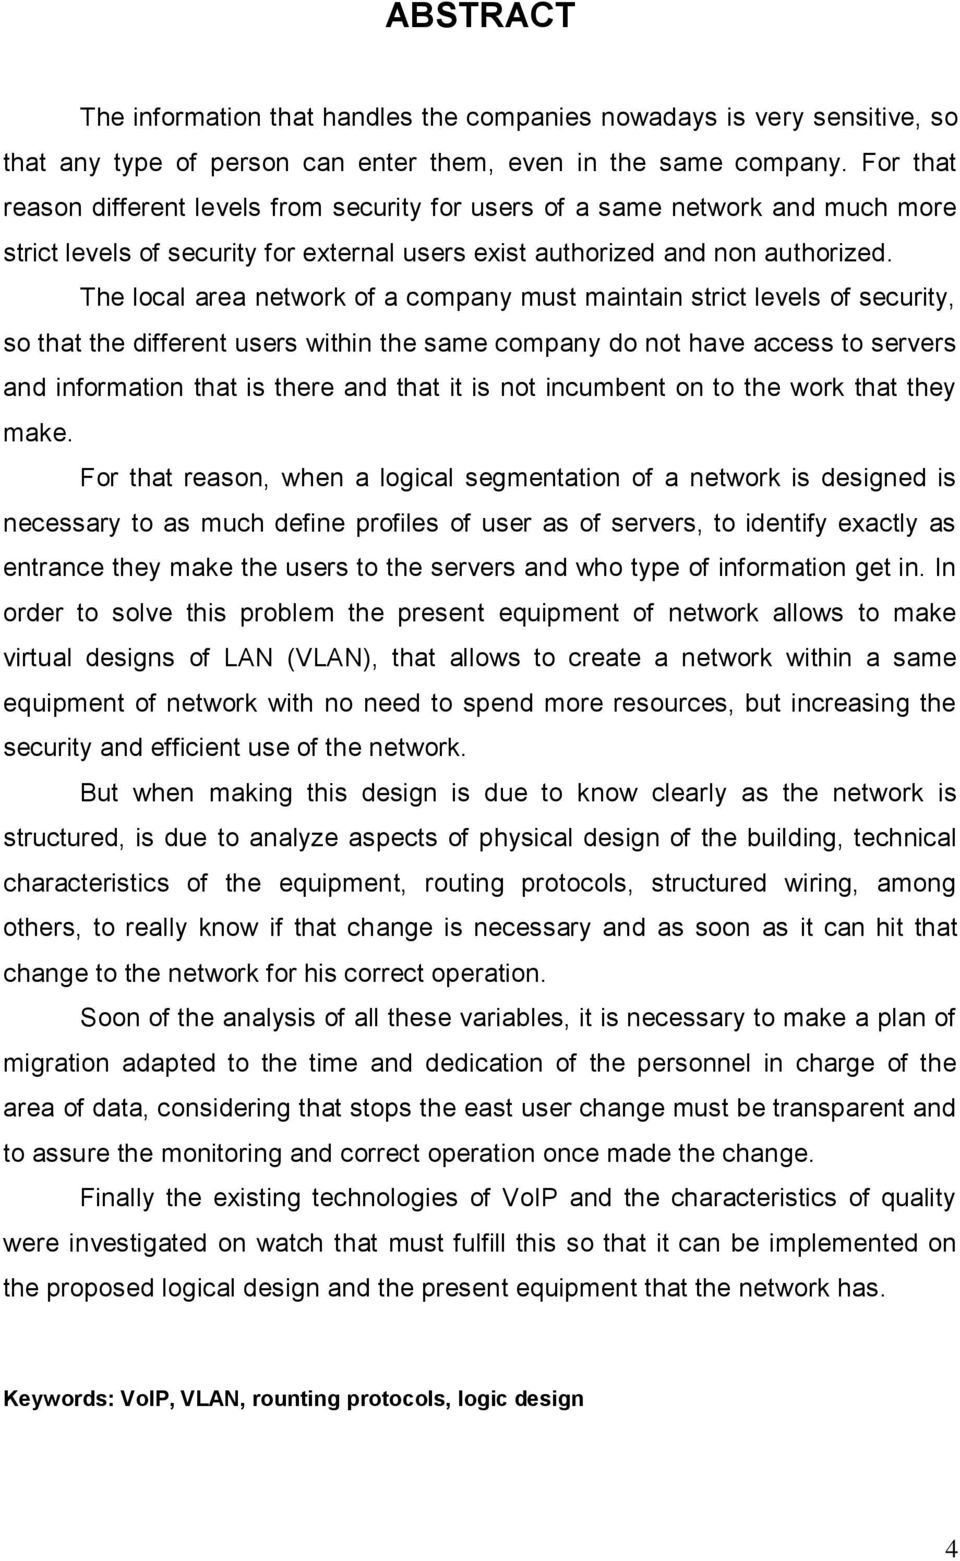 The local area network of a company must maintain strict levels of security, so that the different users within the same company do not have access to servers and information that is there and that